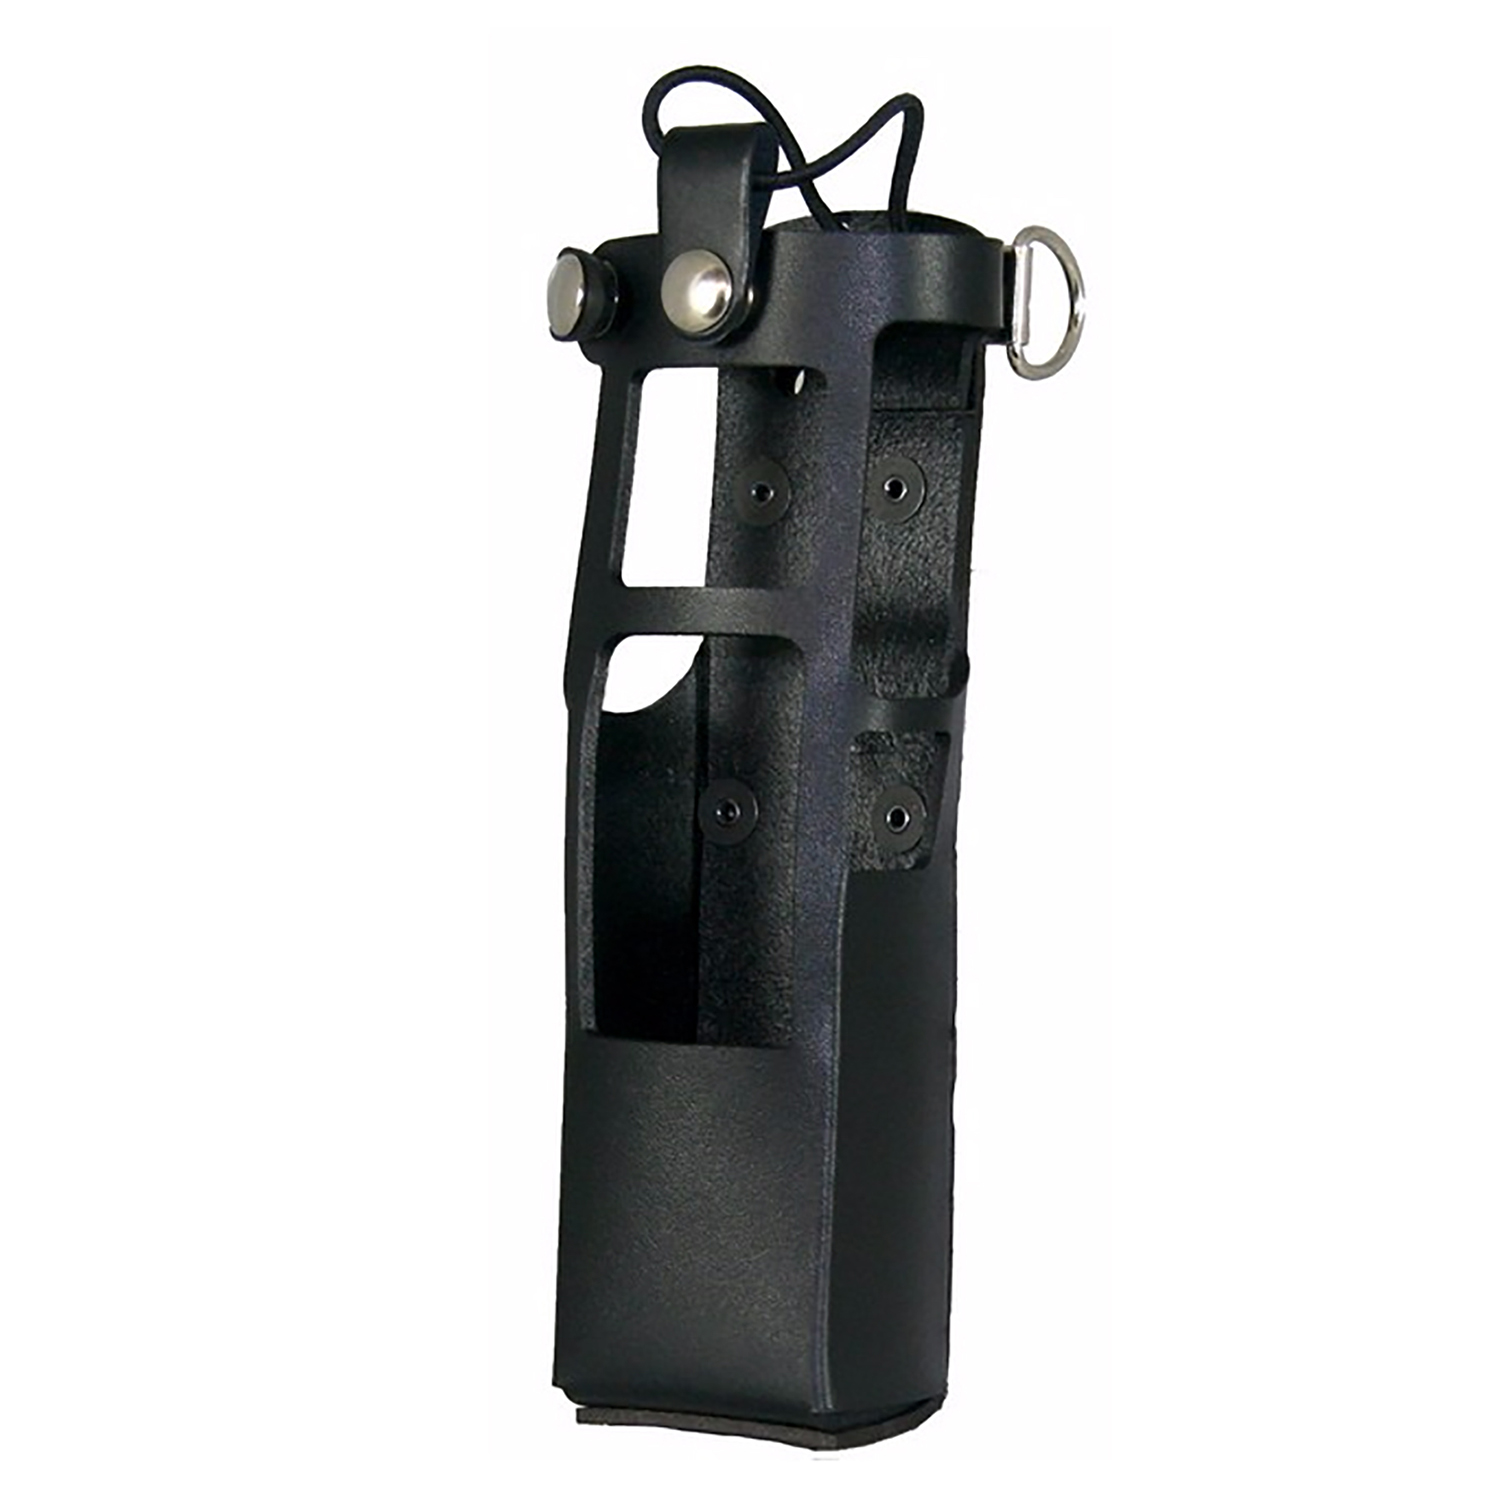 Boston Leather Holder For Motorola APX 7000